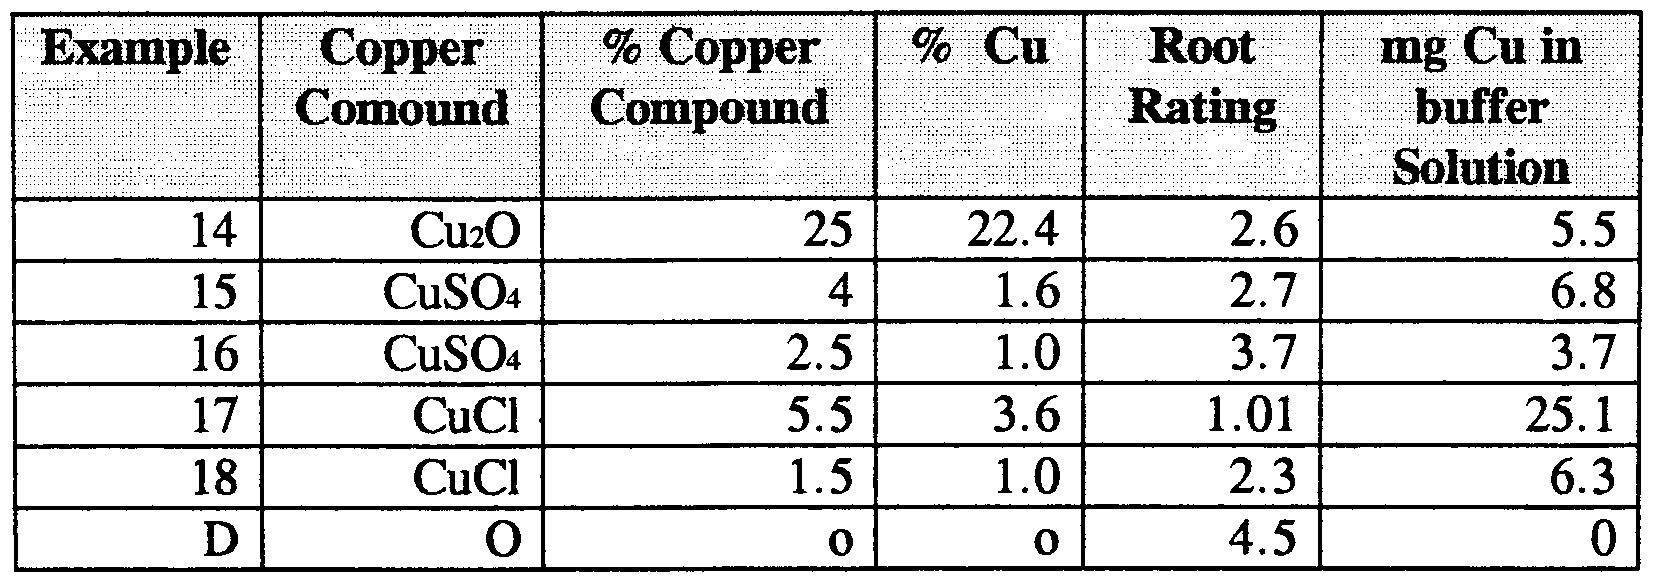 Wo2000067572a1 Plant Root Inhibiting Copper Thermoplastic Polymer